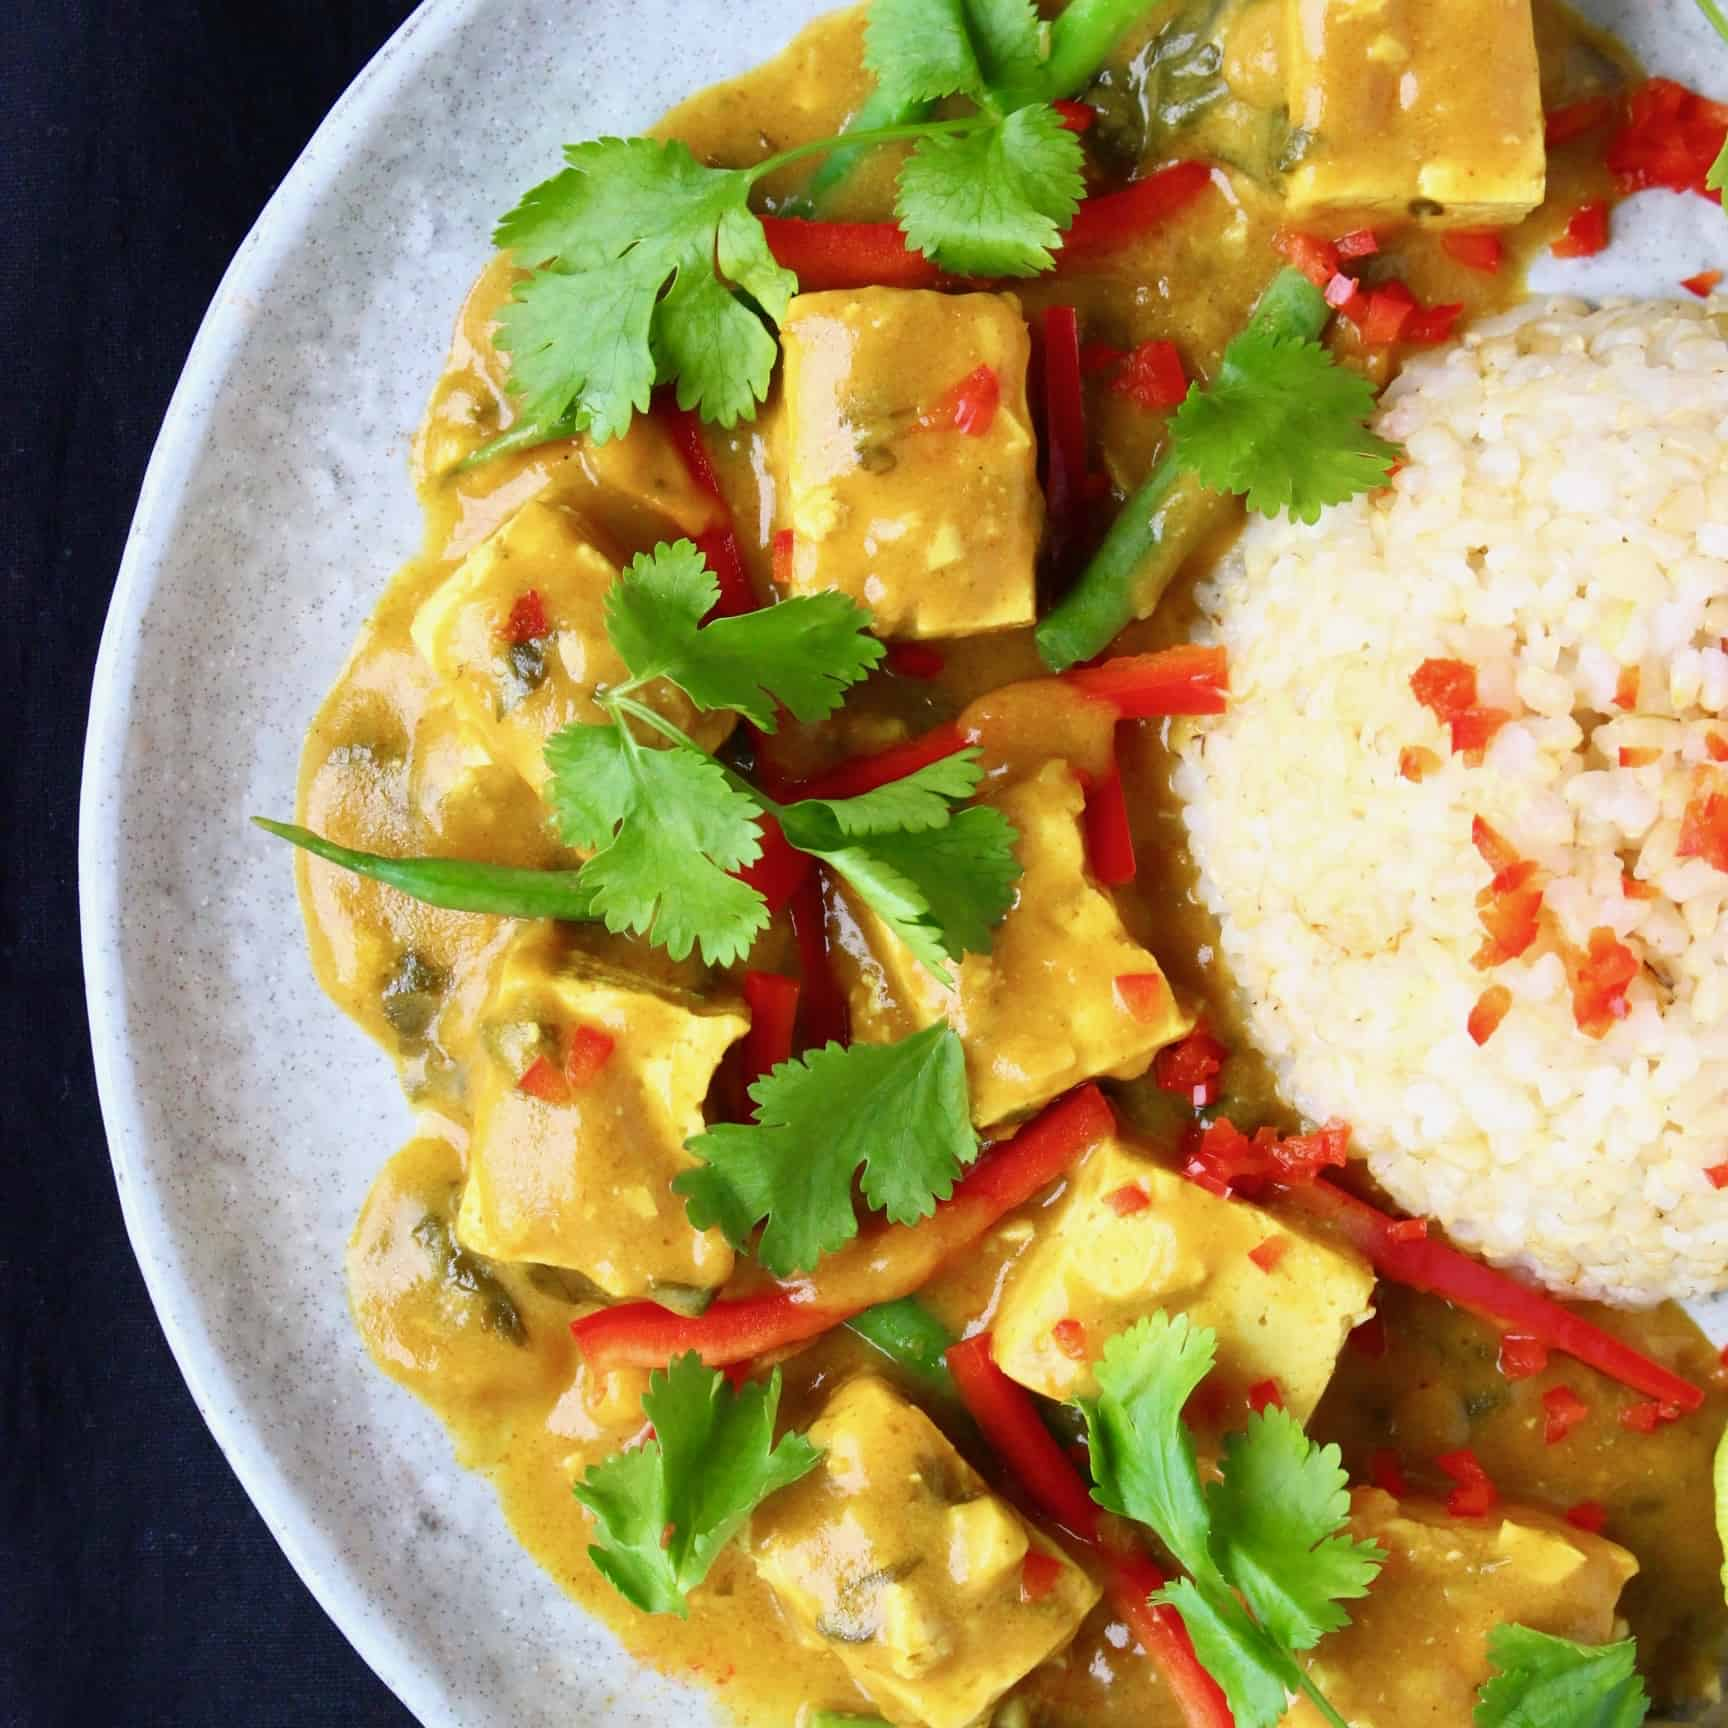 Peanut tofu satay curry with green beans and red peppers on a plate with brown rice